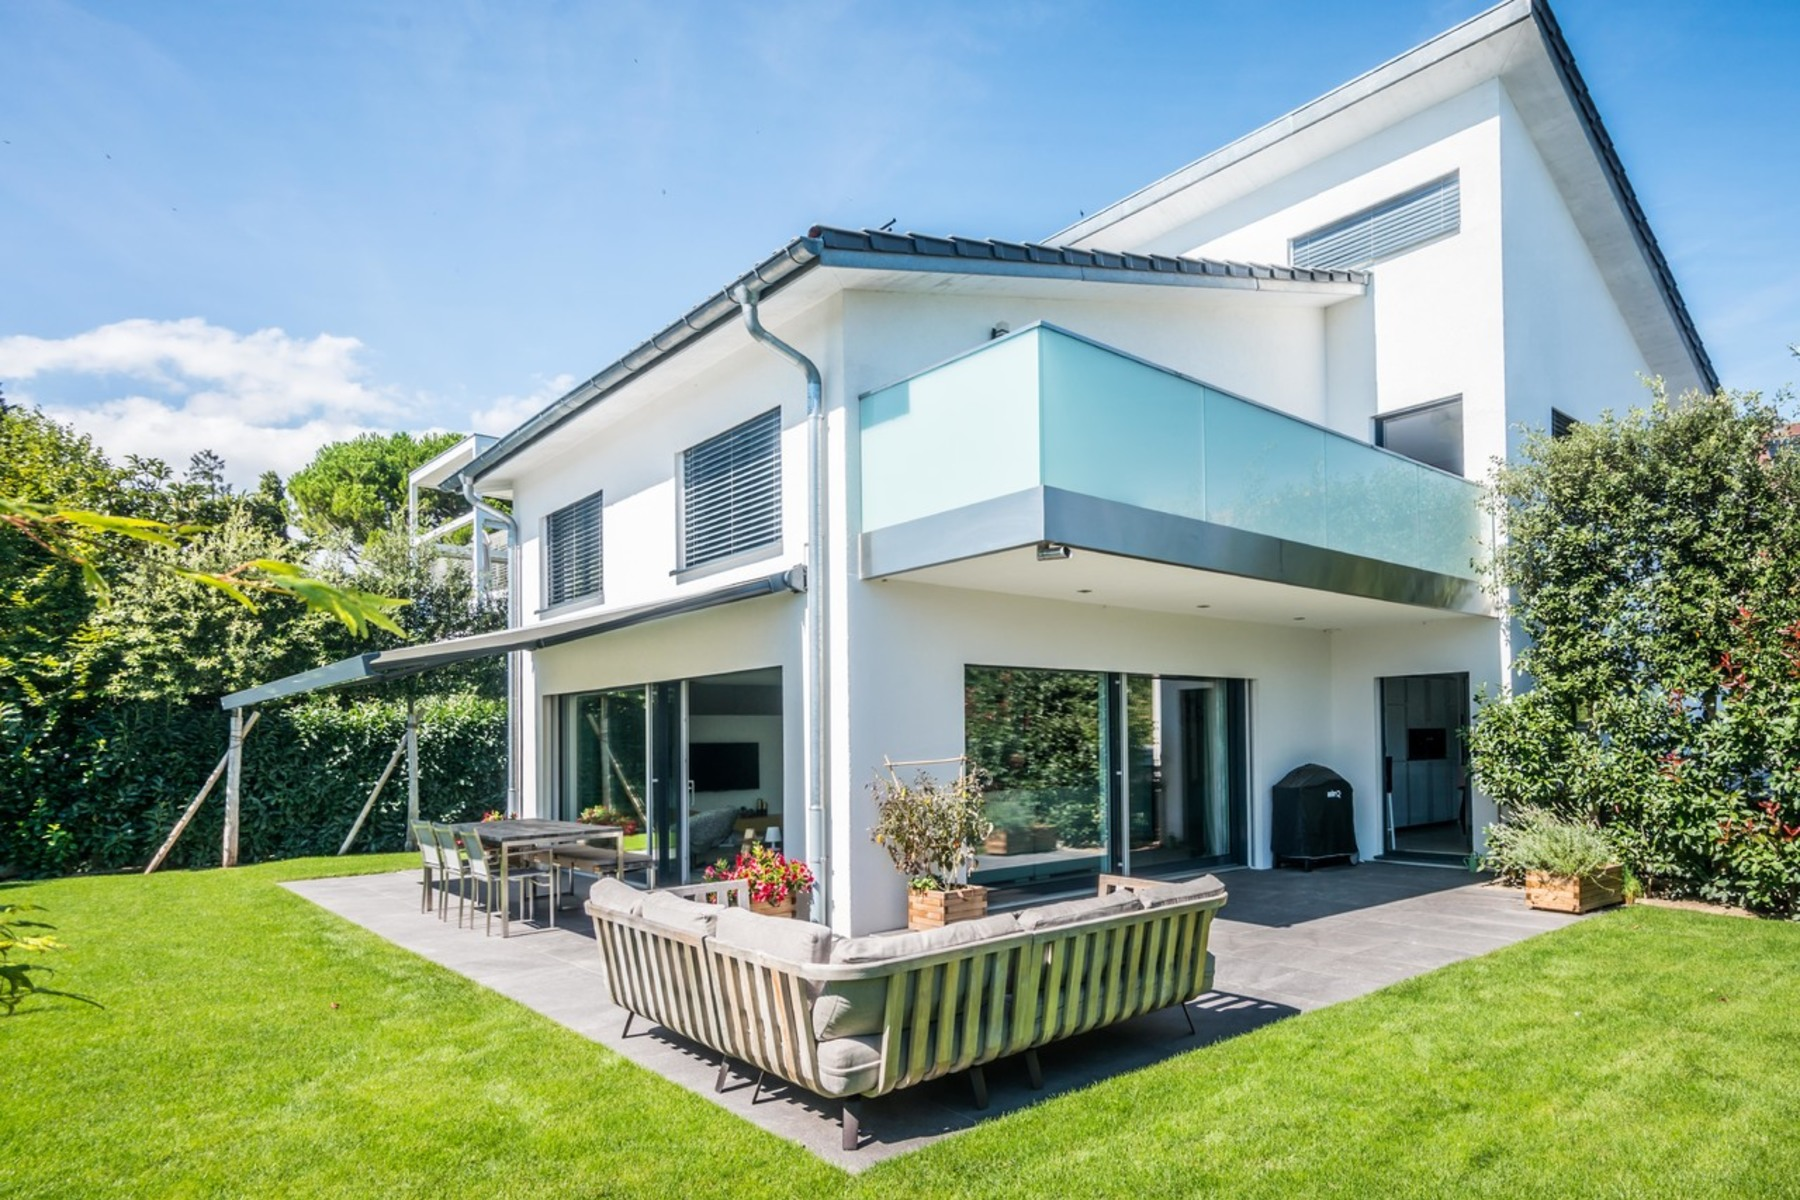 Single Family Home for Active at Stunning modern villa Nyon Nyon, Vaud 1260 Switzerland